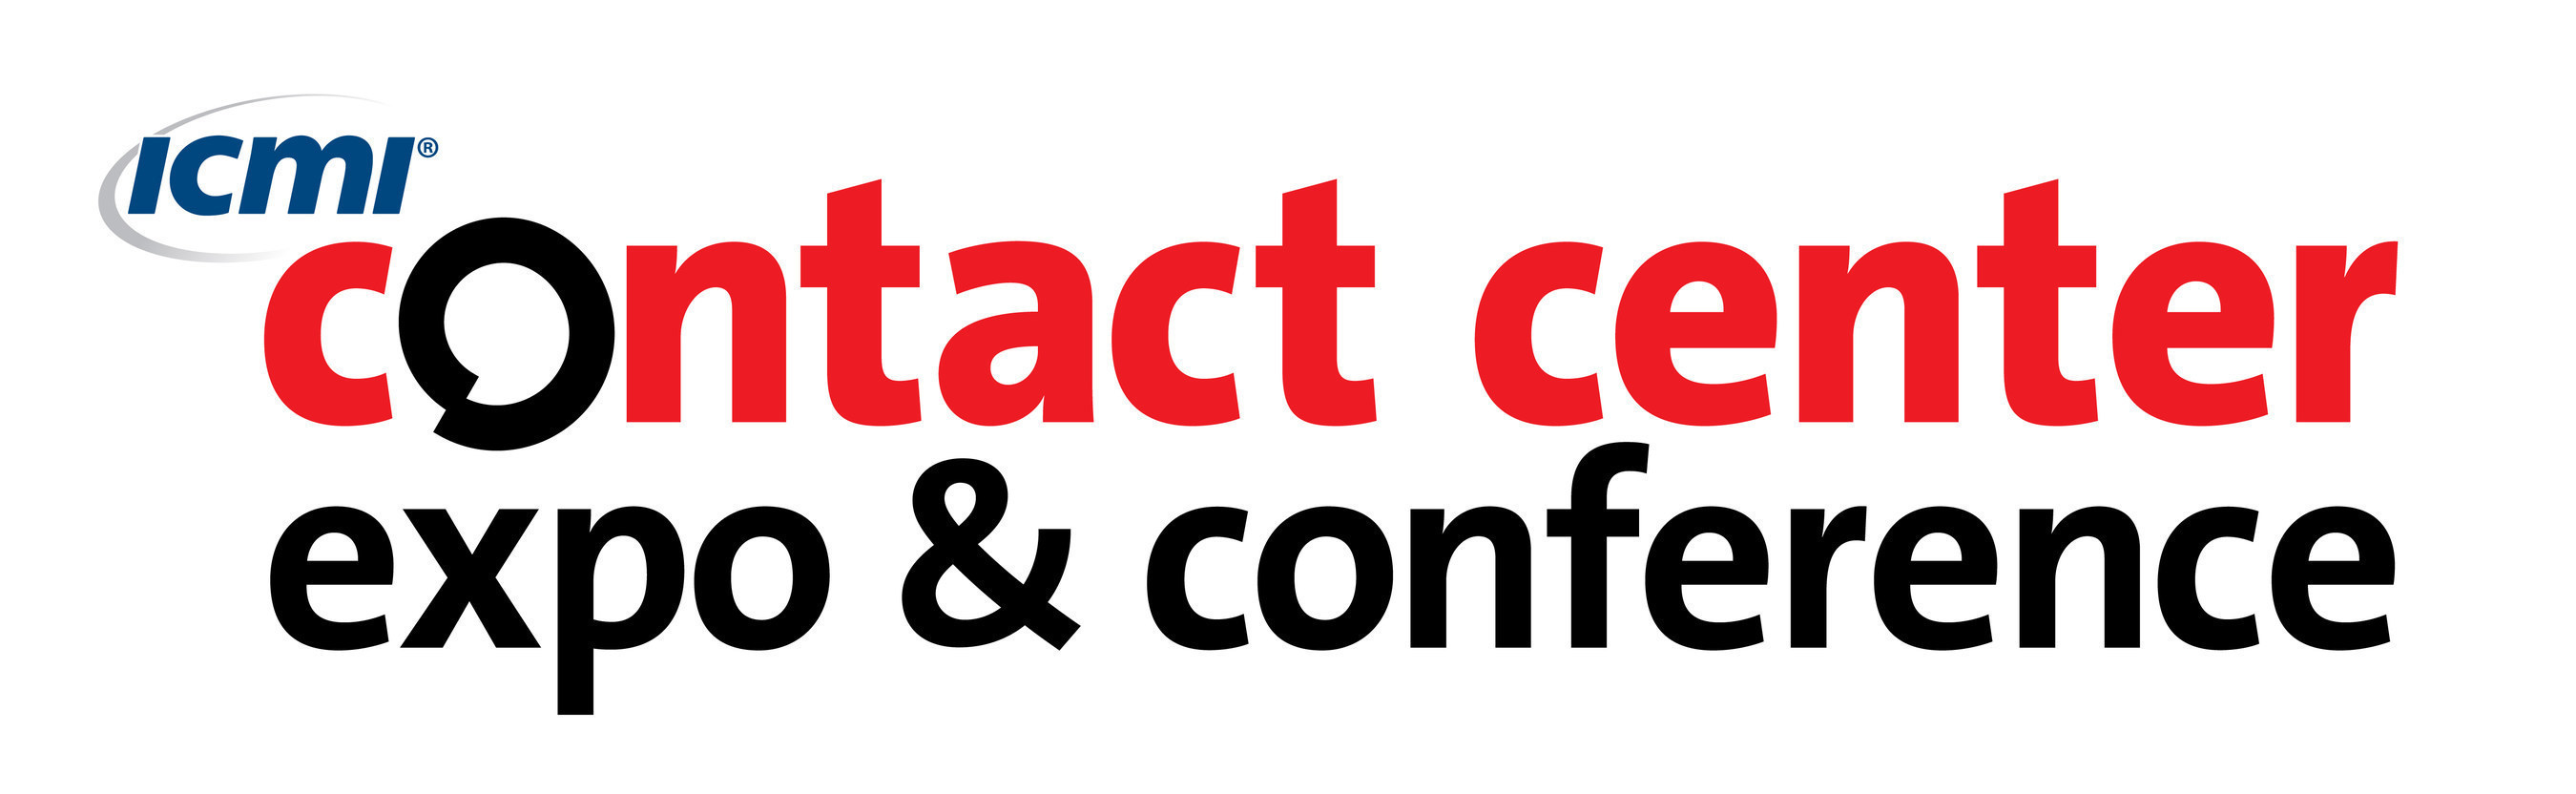 The 2016 Contact Center Expo & Conference will take place May 10-13 at the Long Beach Convention Center in Long Beach, CA.